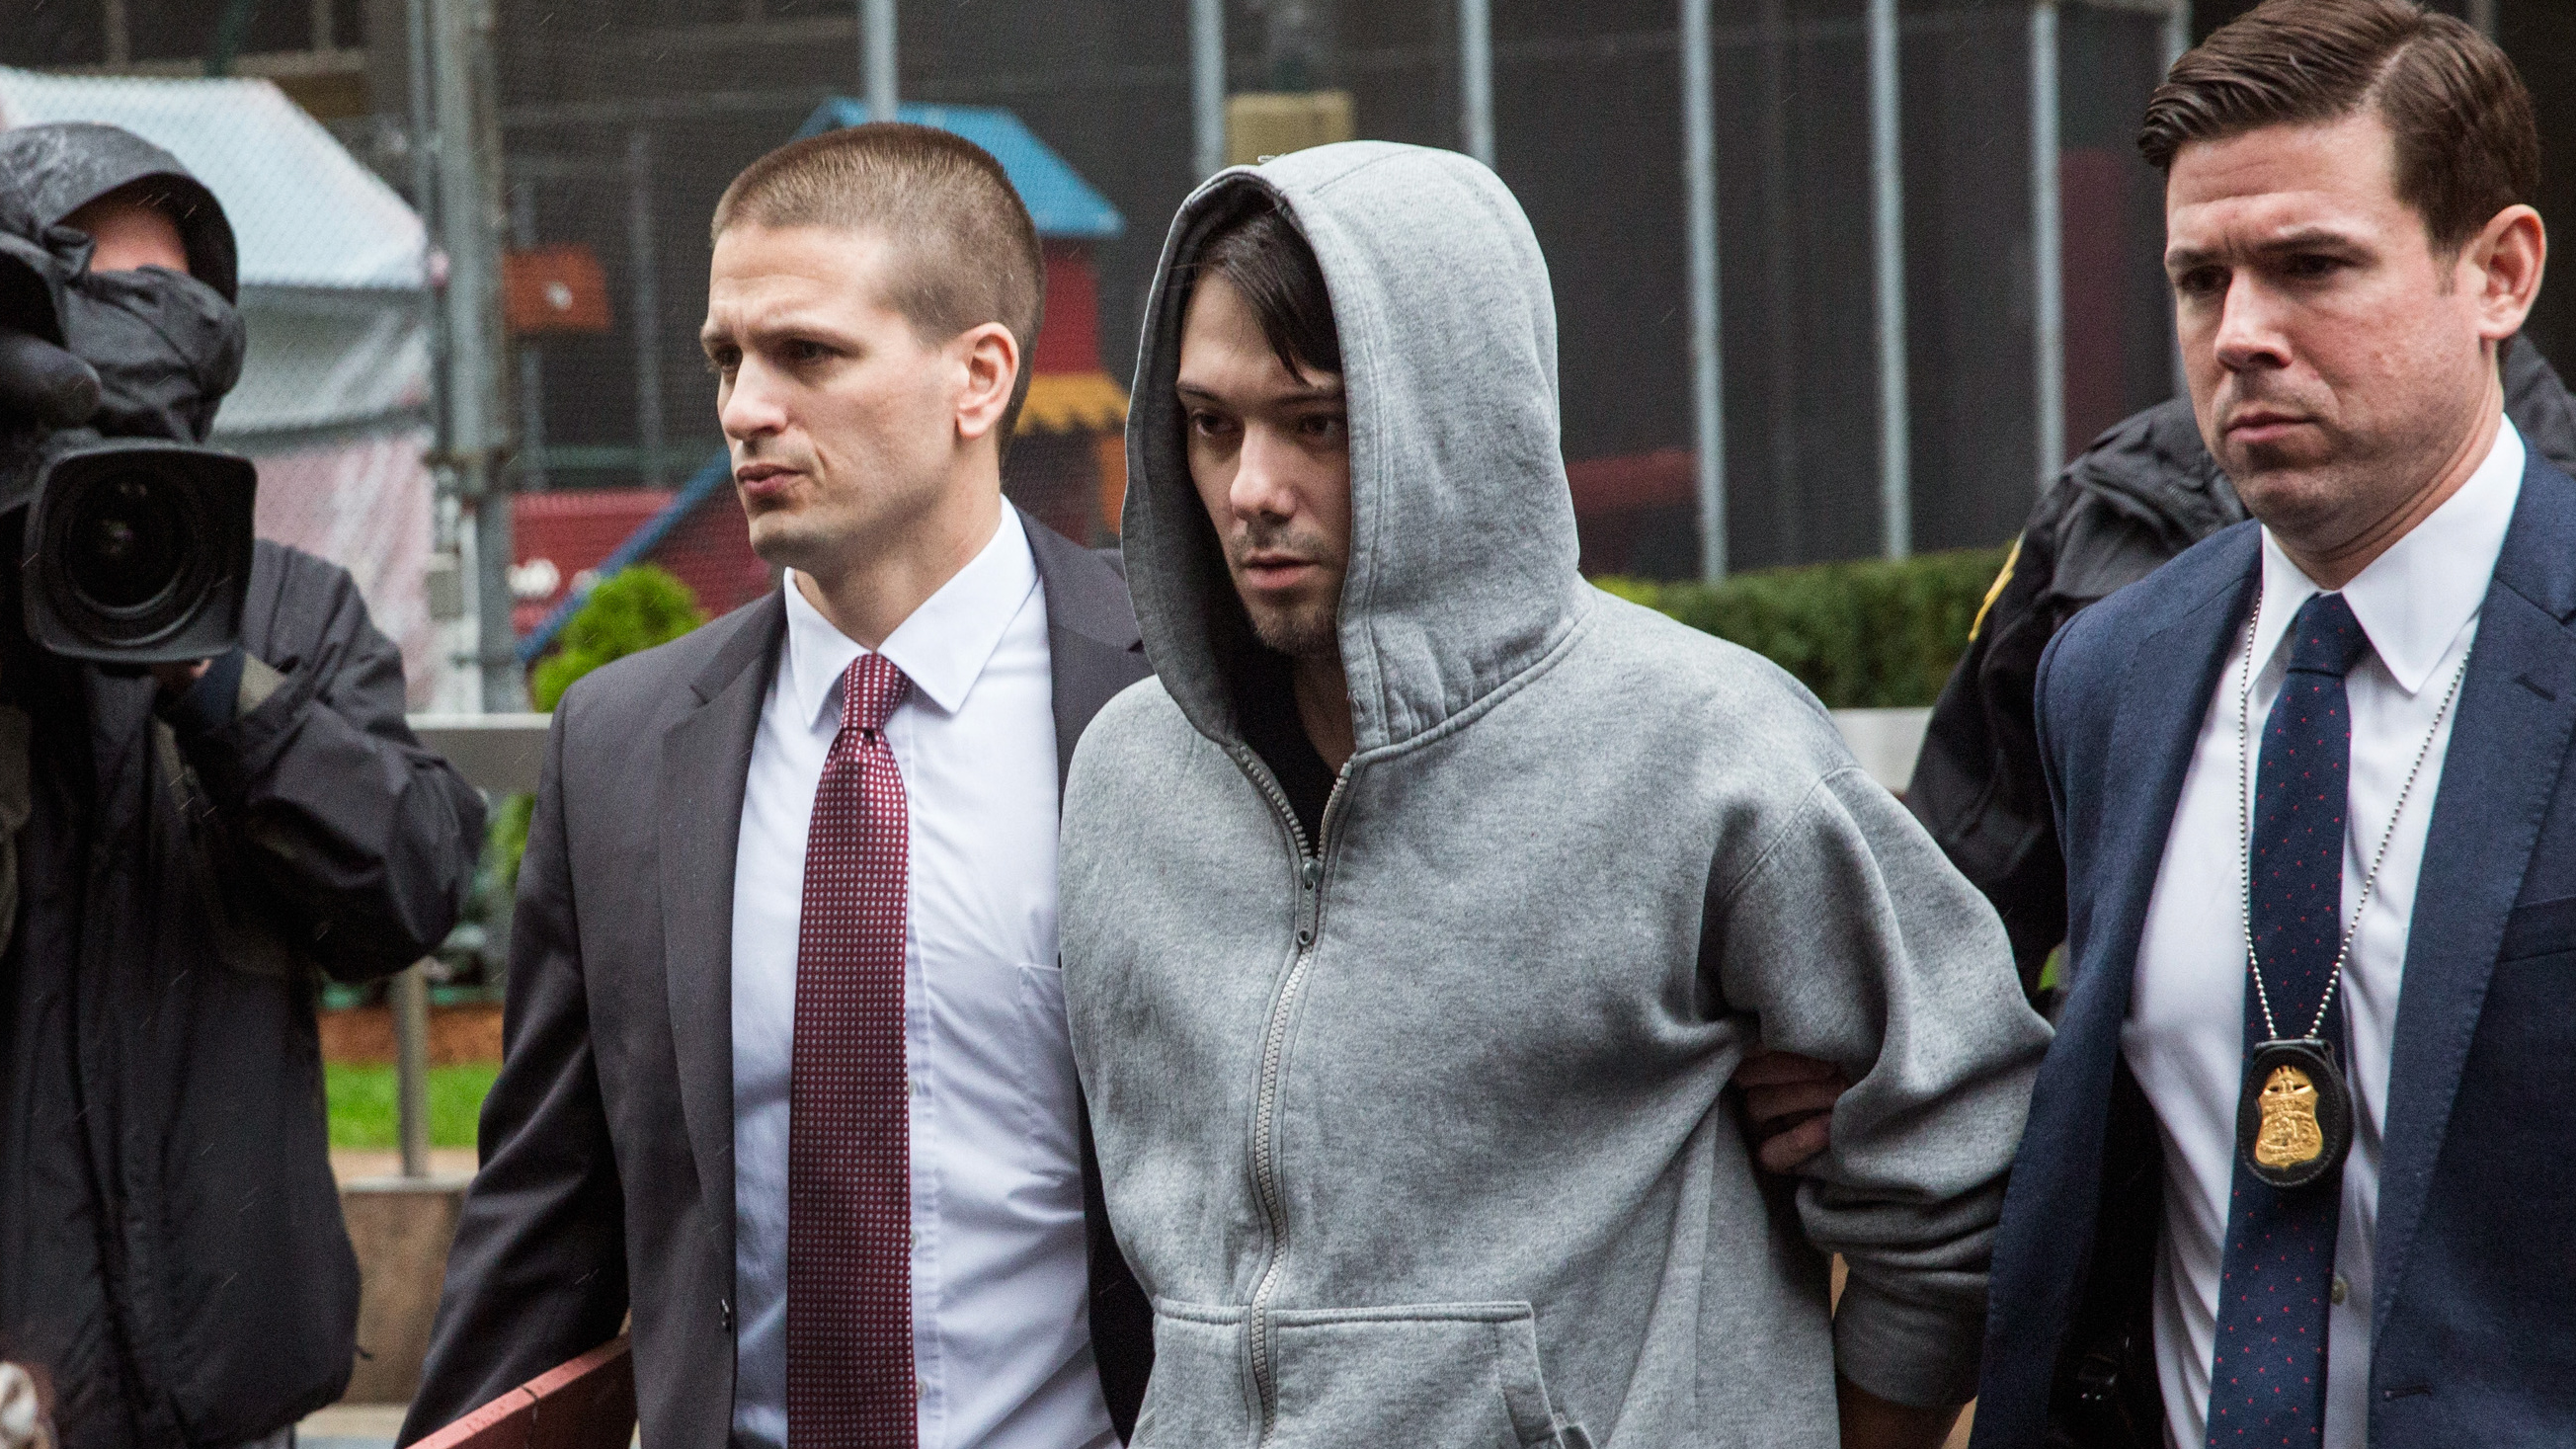 the controversial issue of martin shkreli and the turing pharmaceuticals in america Pharma bro martin shkreli has been convicted on by more than 5,000% in 2015 under his former company turing pharmaceuticals was convicted on three criminal securities fraud and conspiracy another controversial element of shkreli's business model involves the food and.